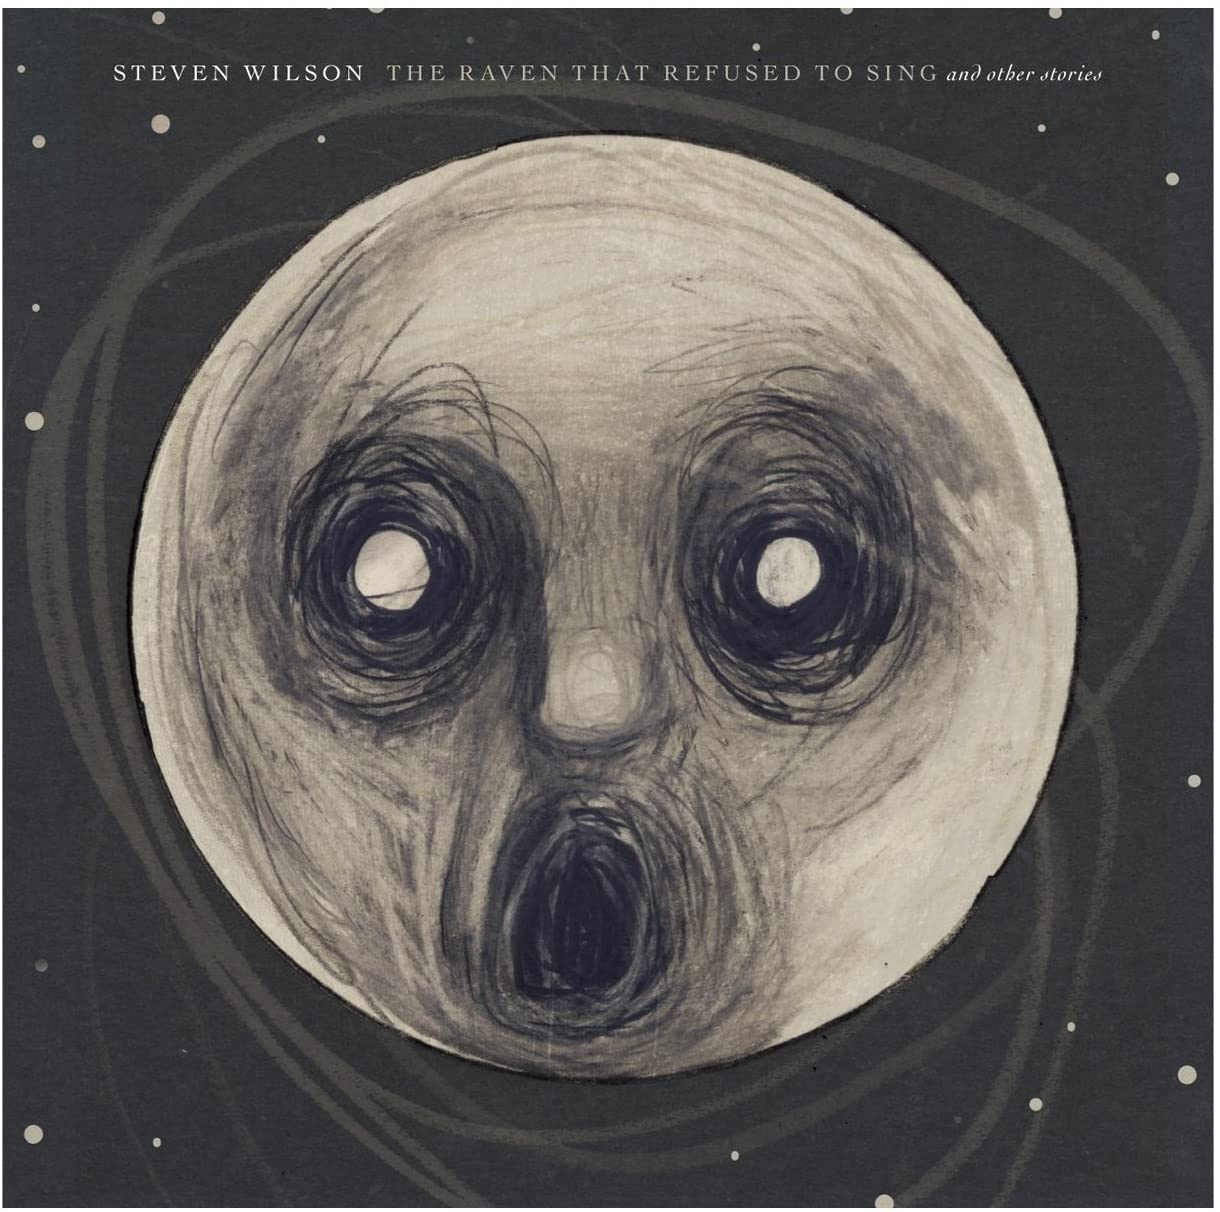 Aprile 2021: Steven Wilson - THE RAVEN THAT REFUSED TO SING AND OTHER STORIES (2013)